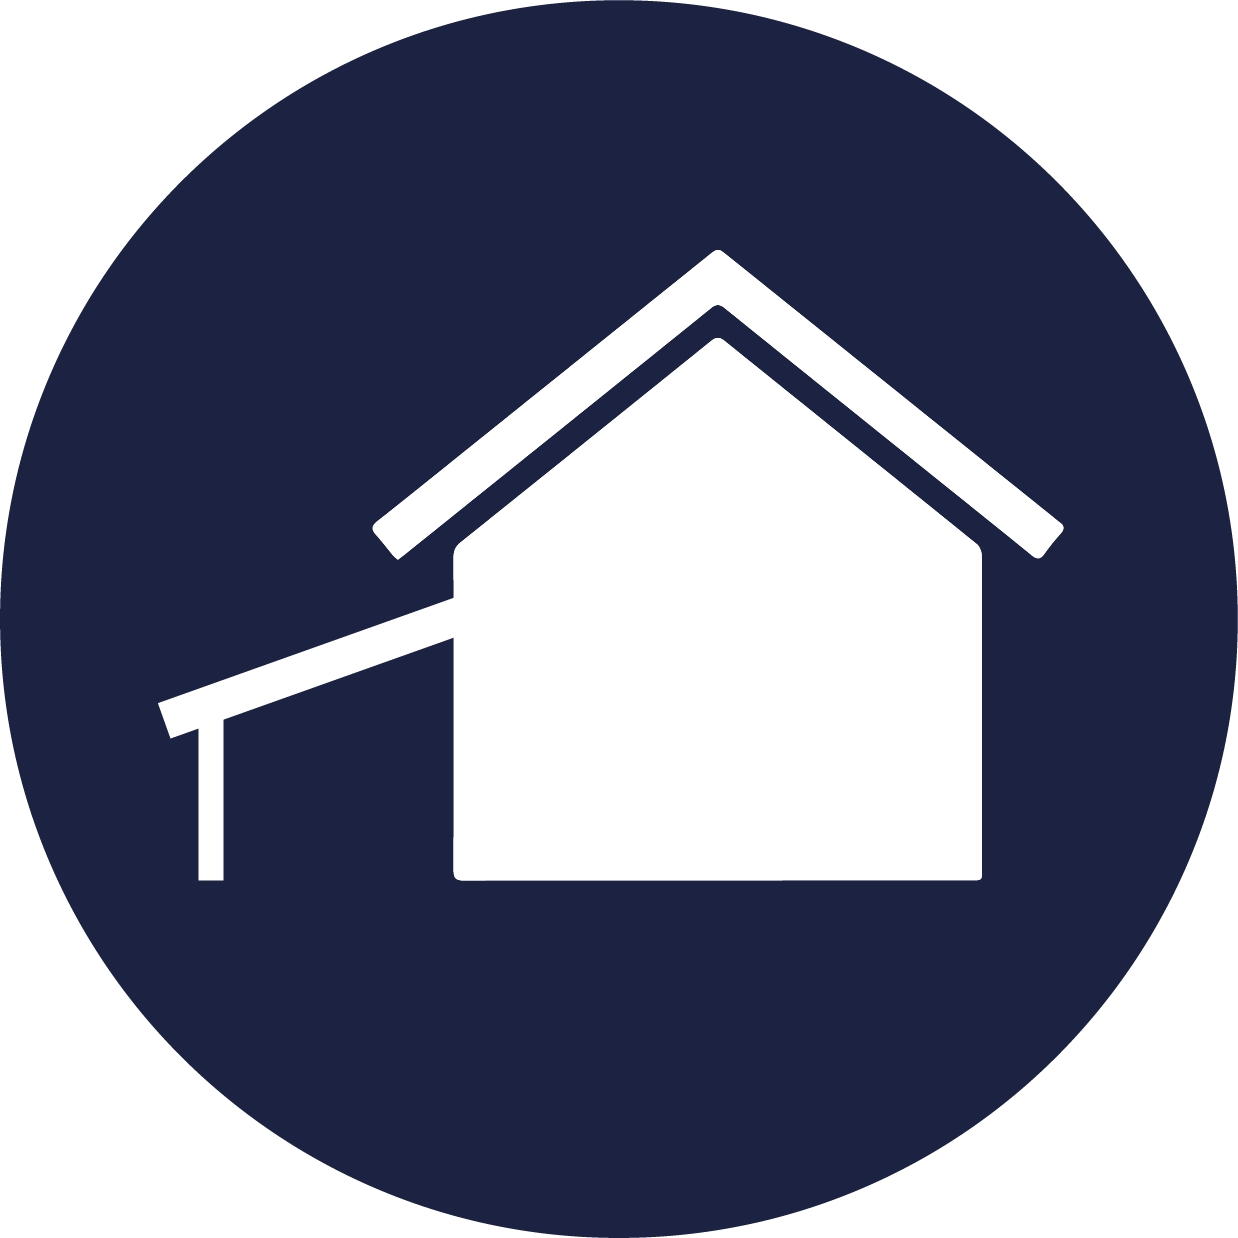 Lean-to_Roof_white_in_blue_circle_1